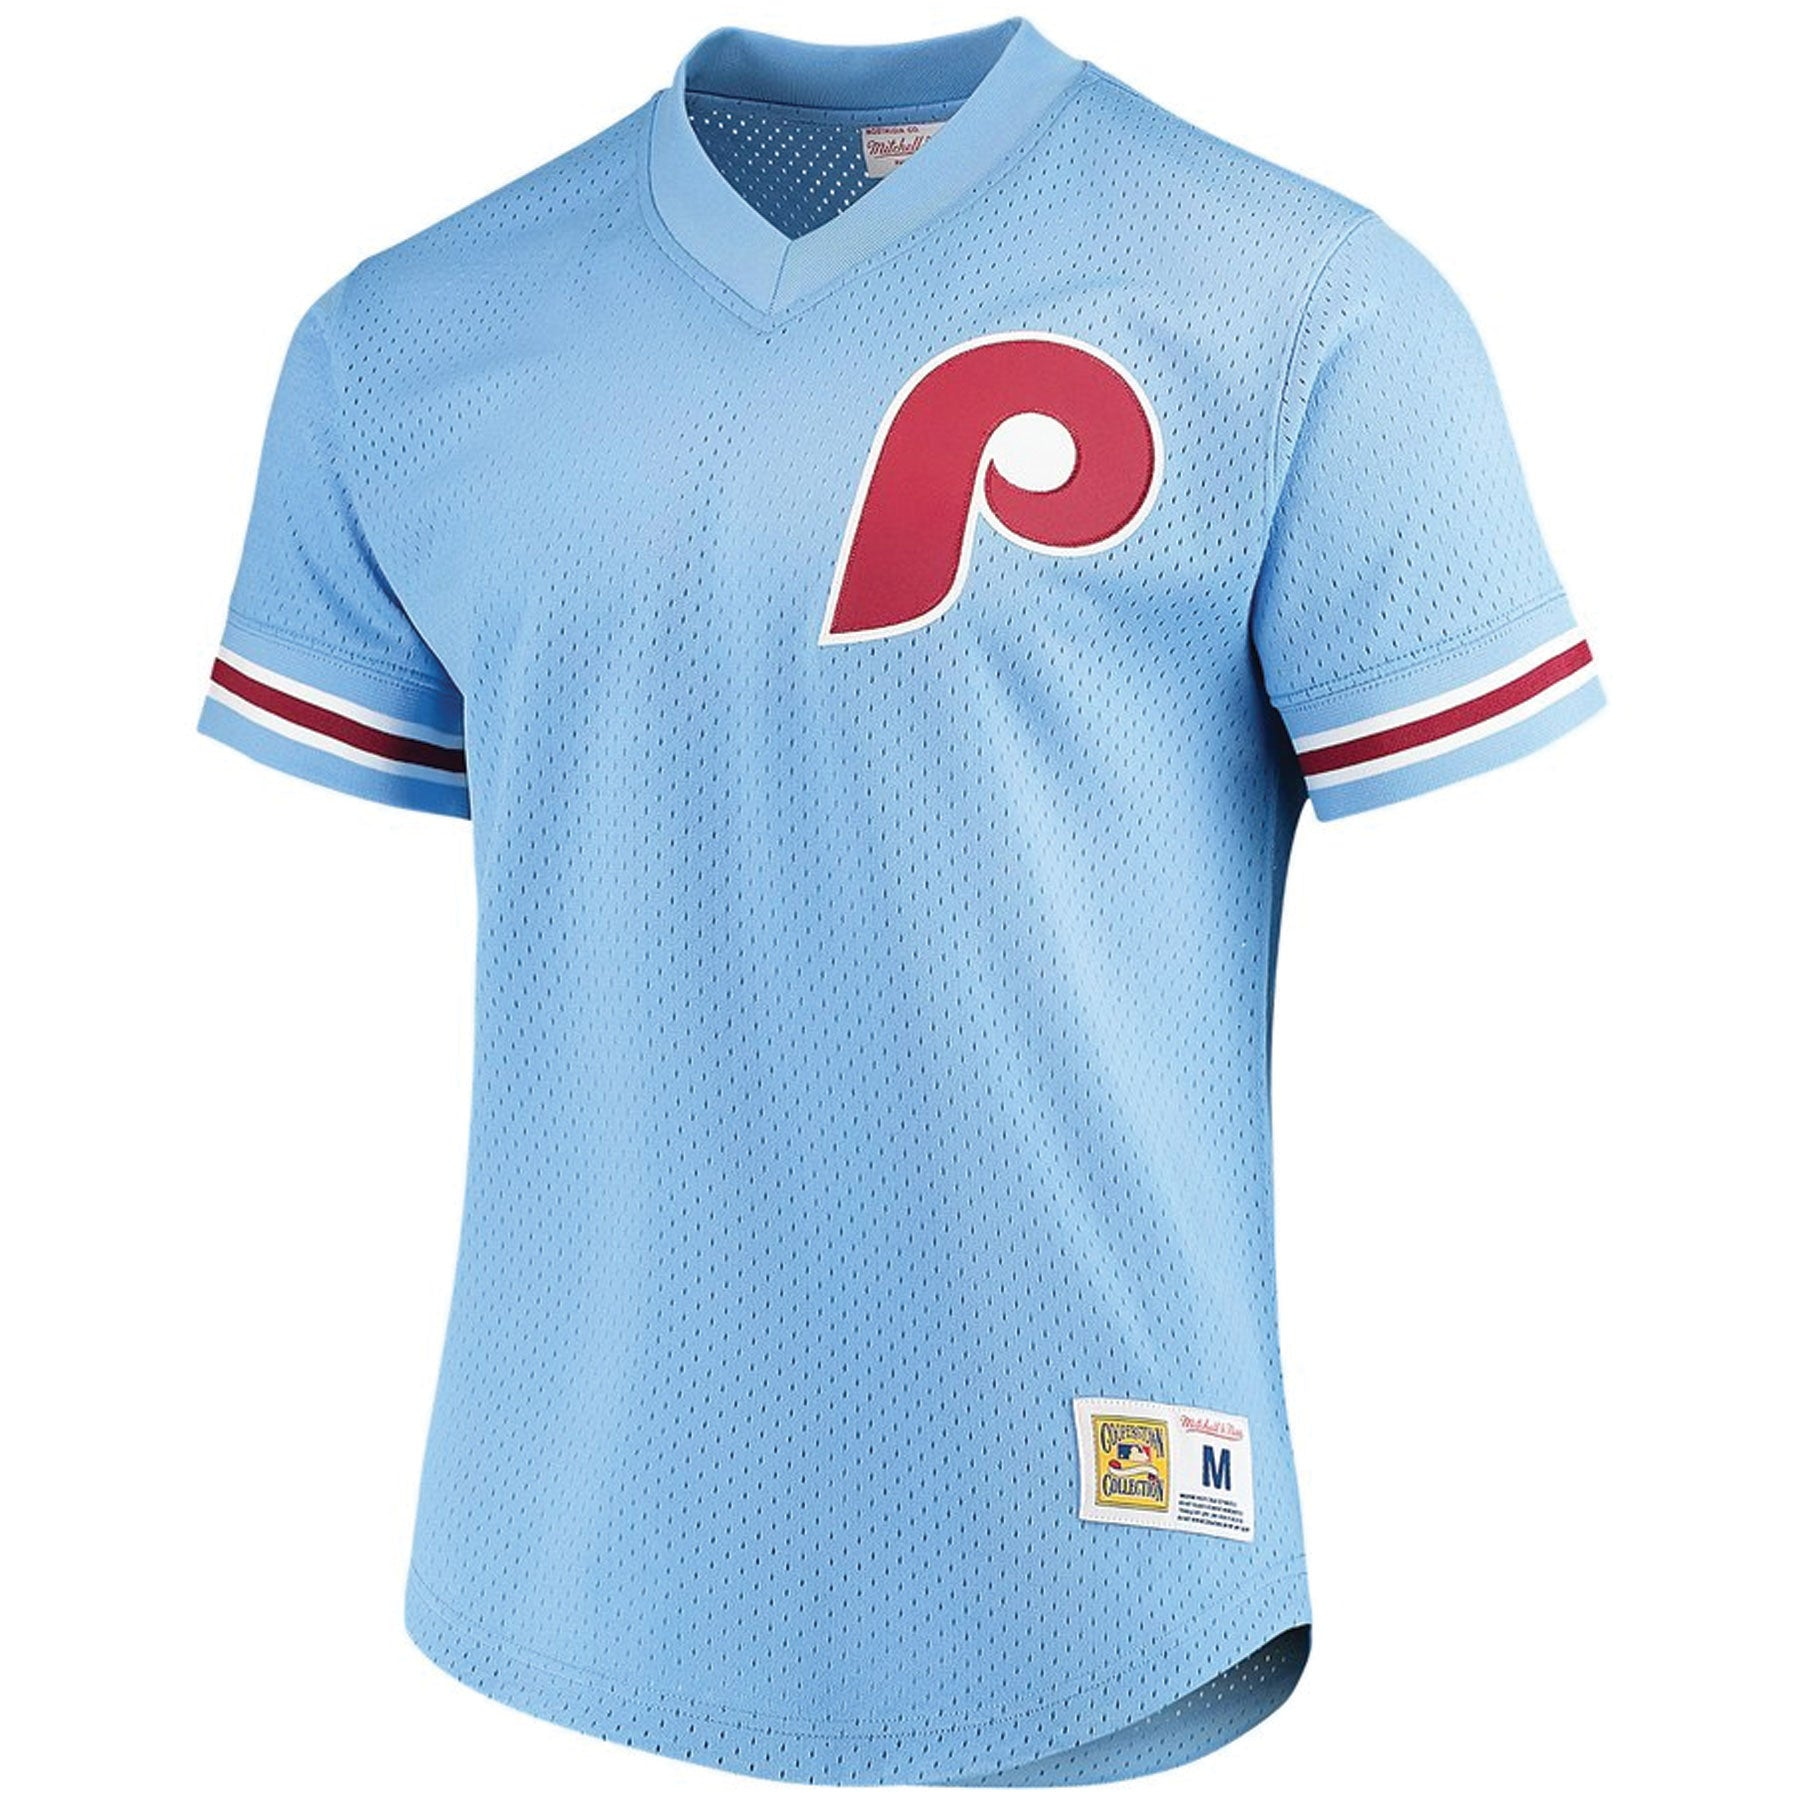 separation shoes 573c9 d74a1 phillies throwback jersey